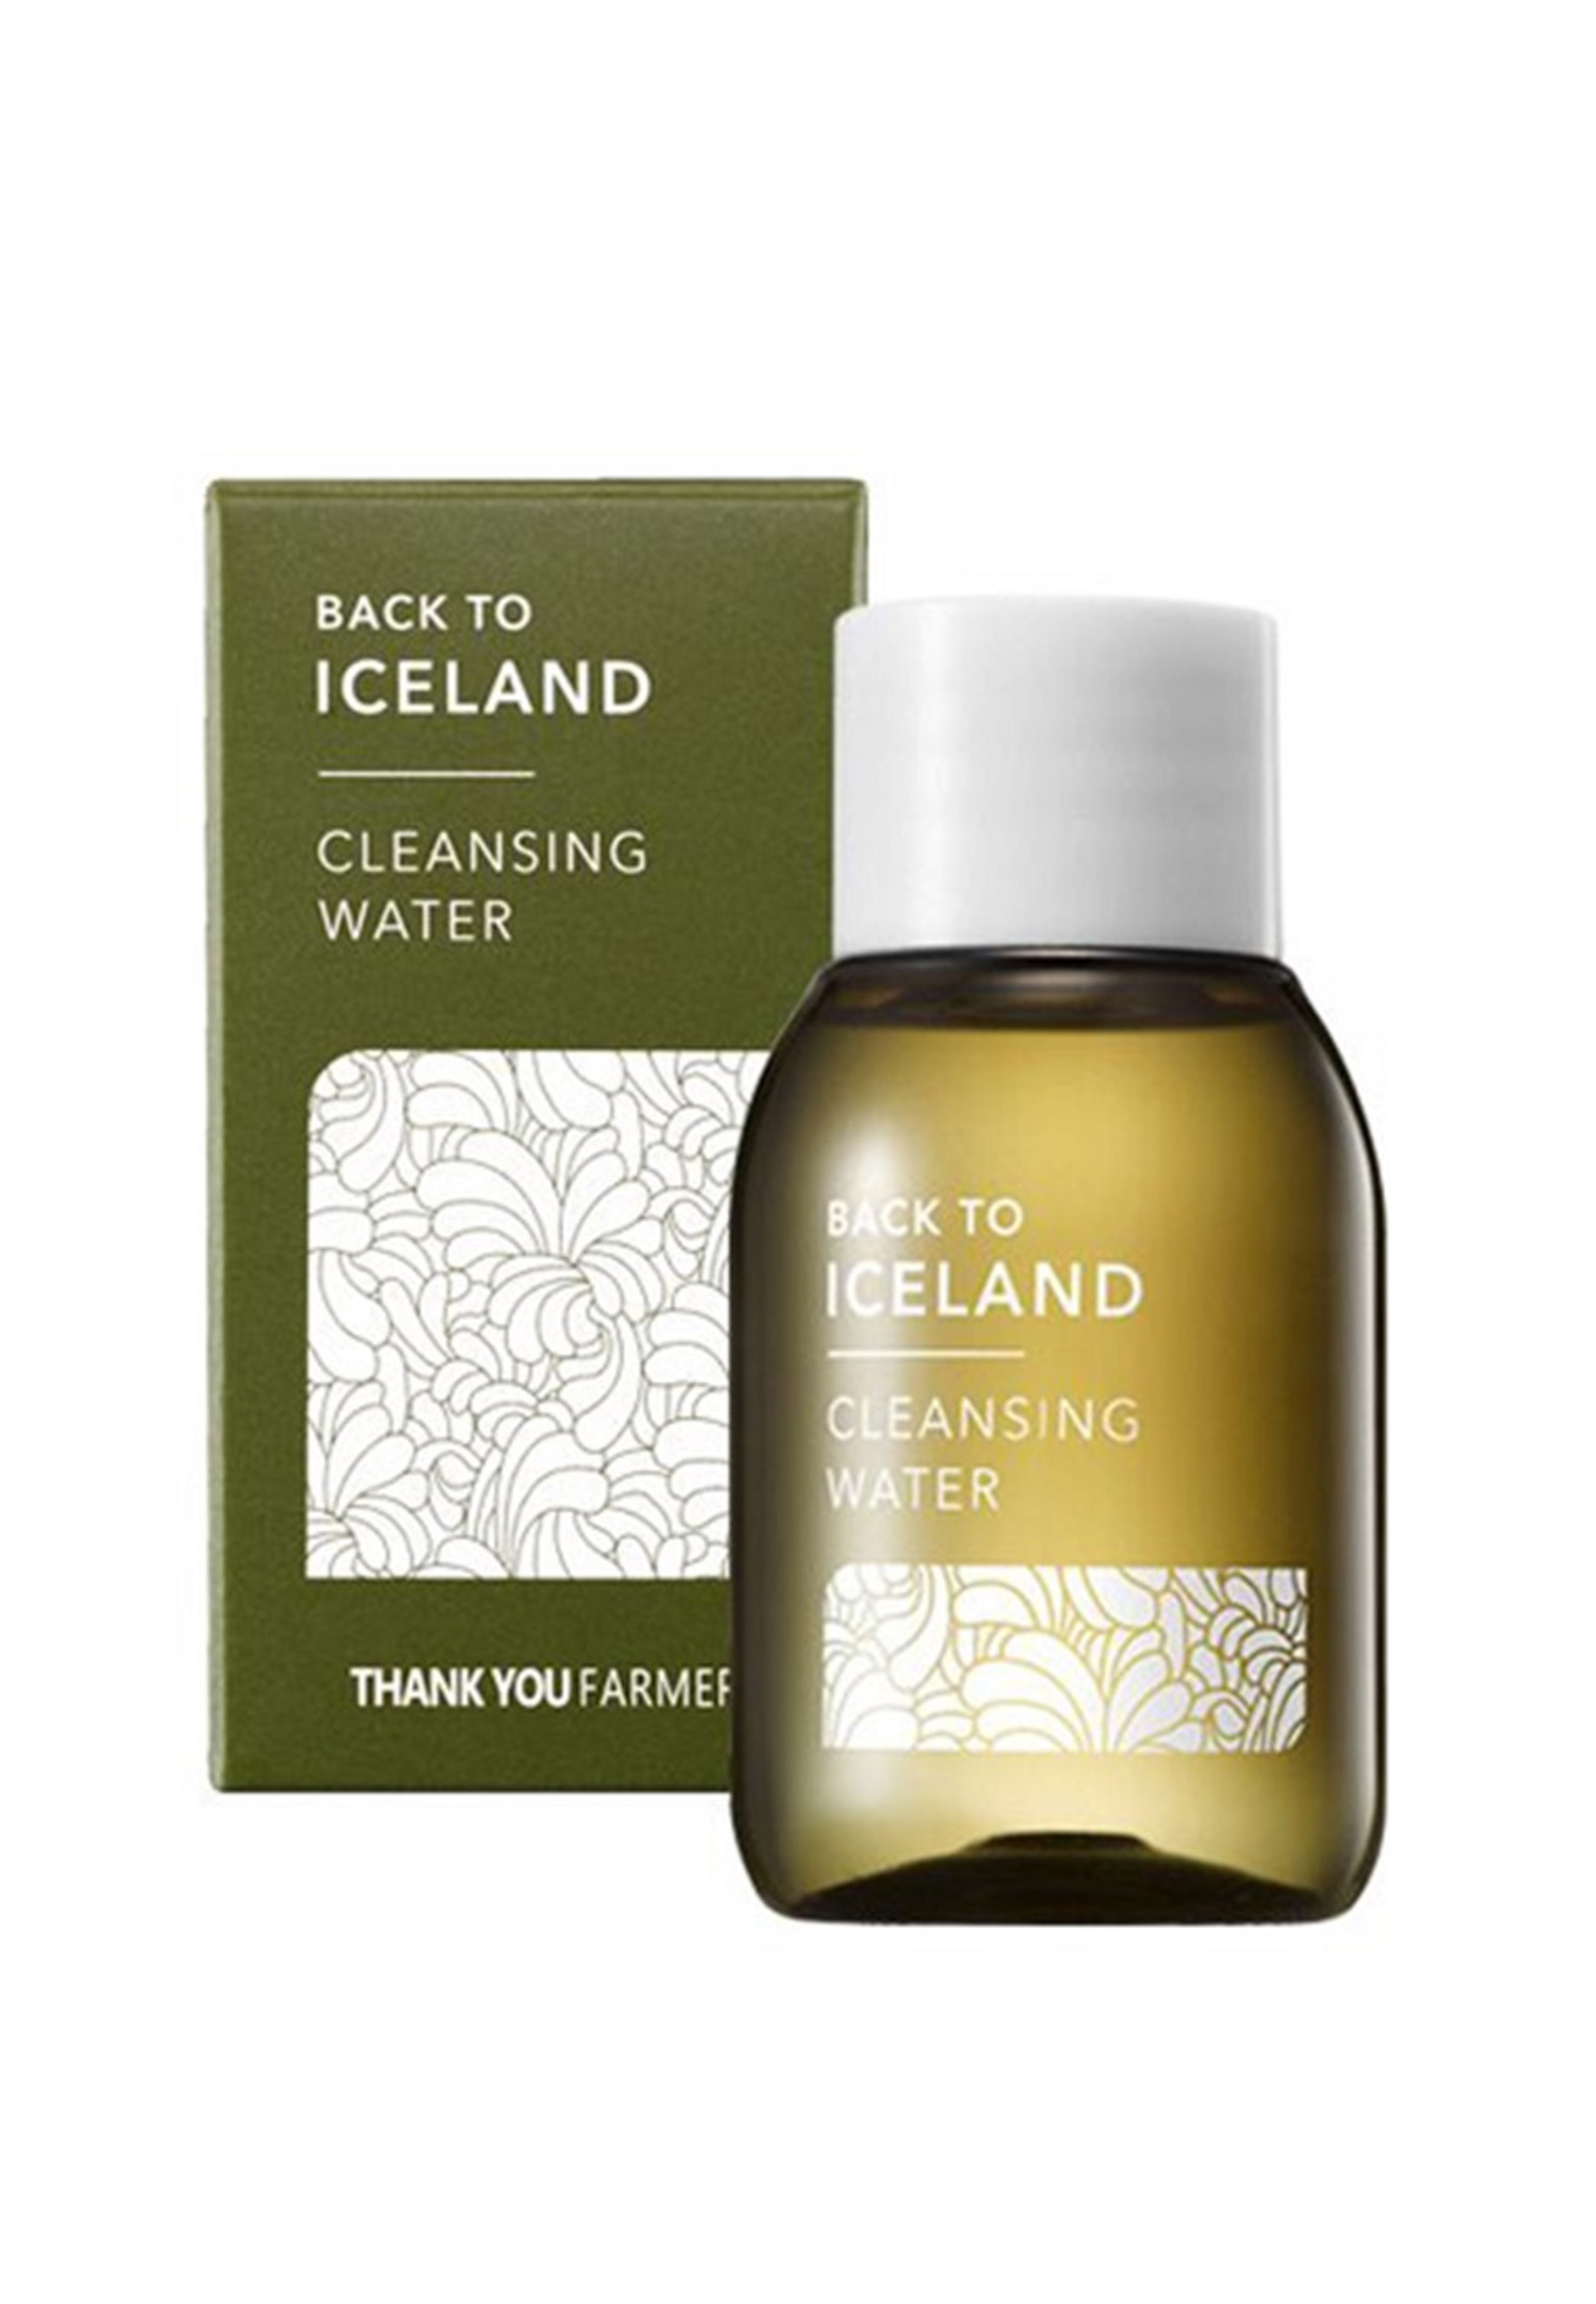 Back to Iceland Cleansing Water 30ml